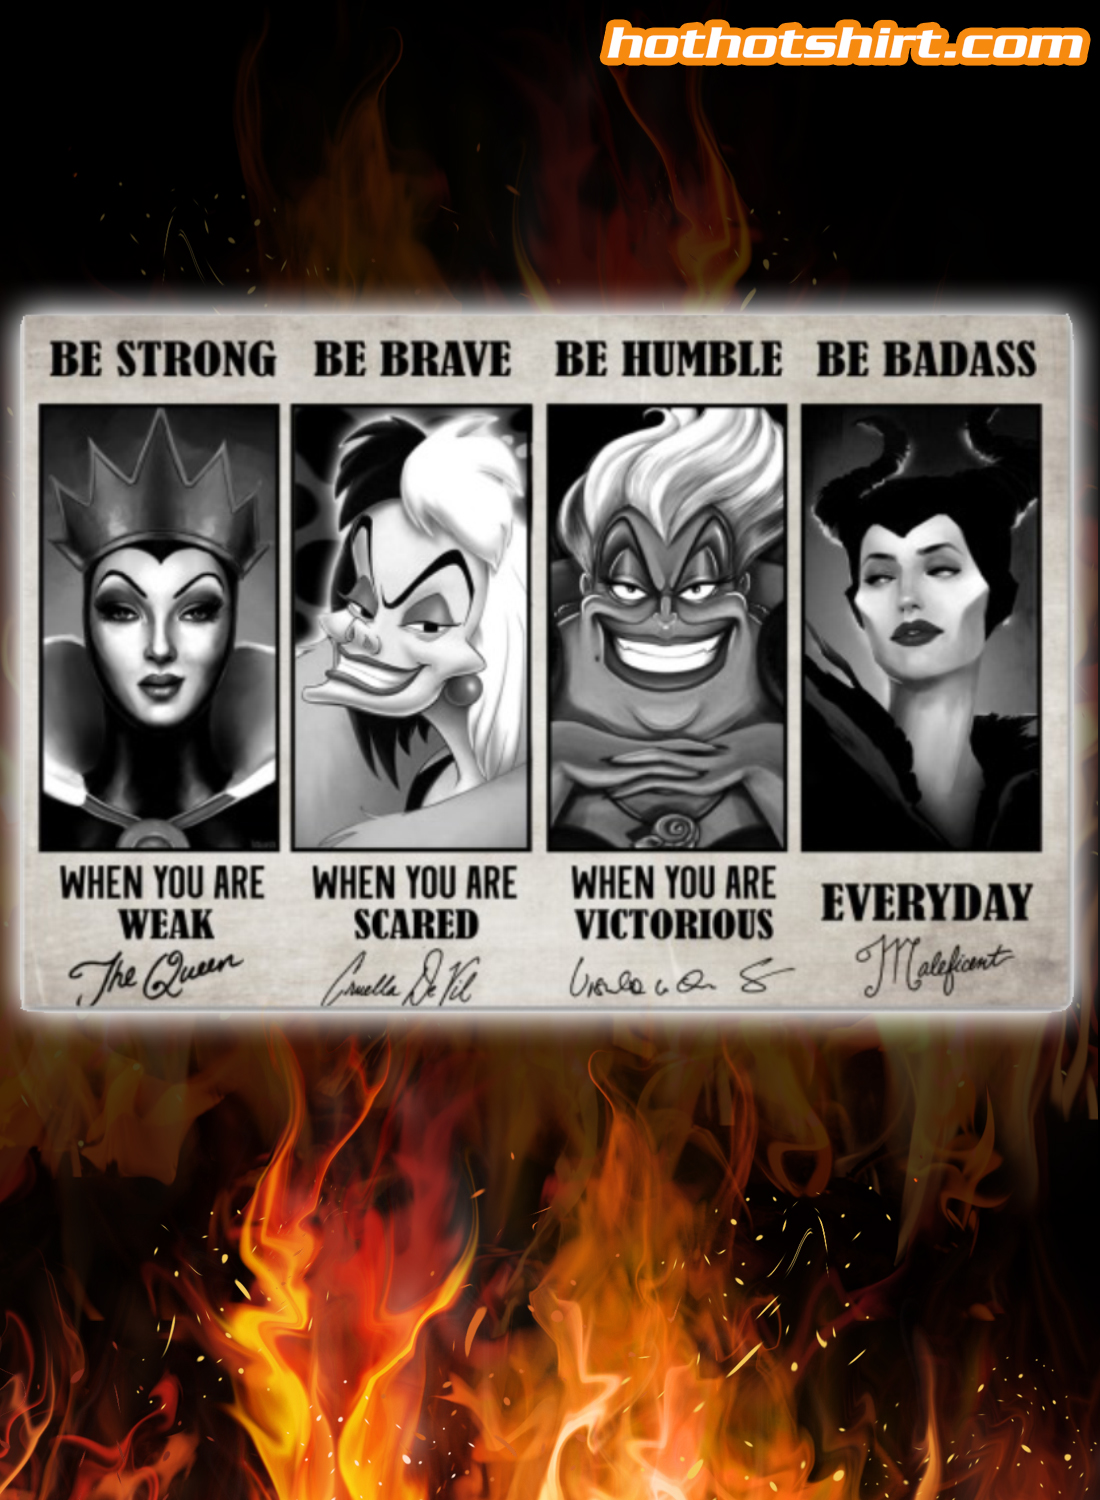 Disney antagonist be strong be brave be humble be badass signature poster